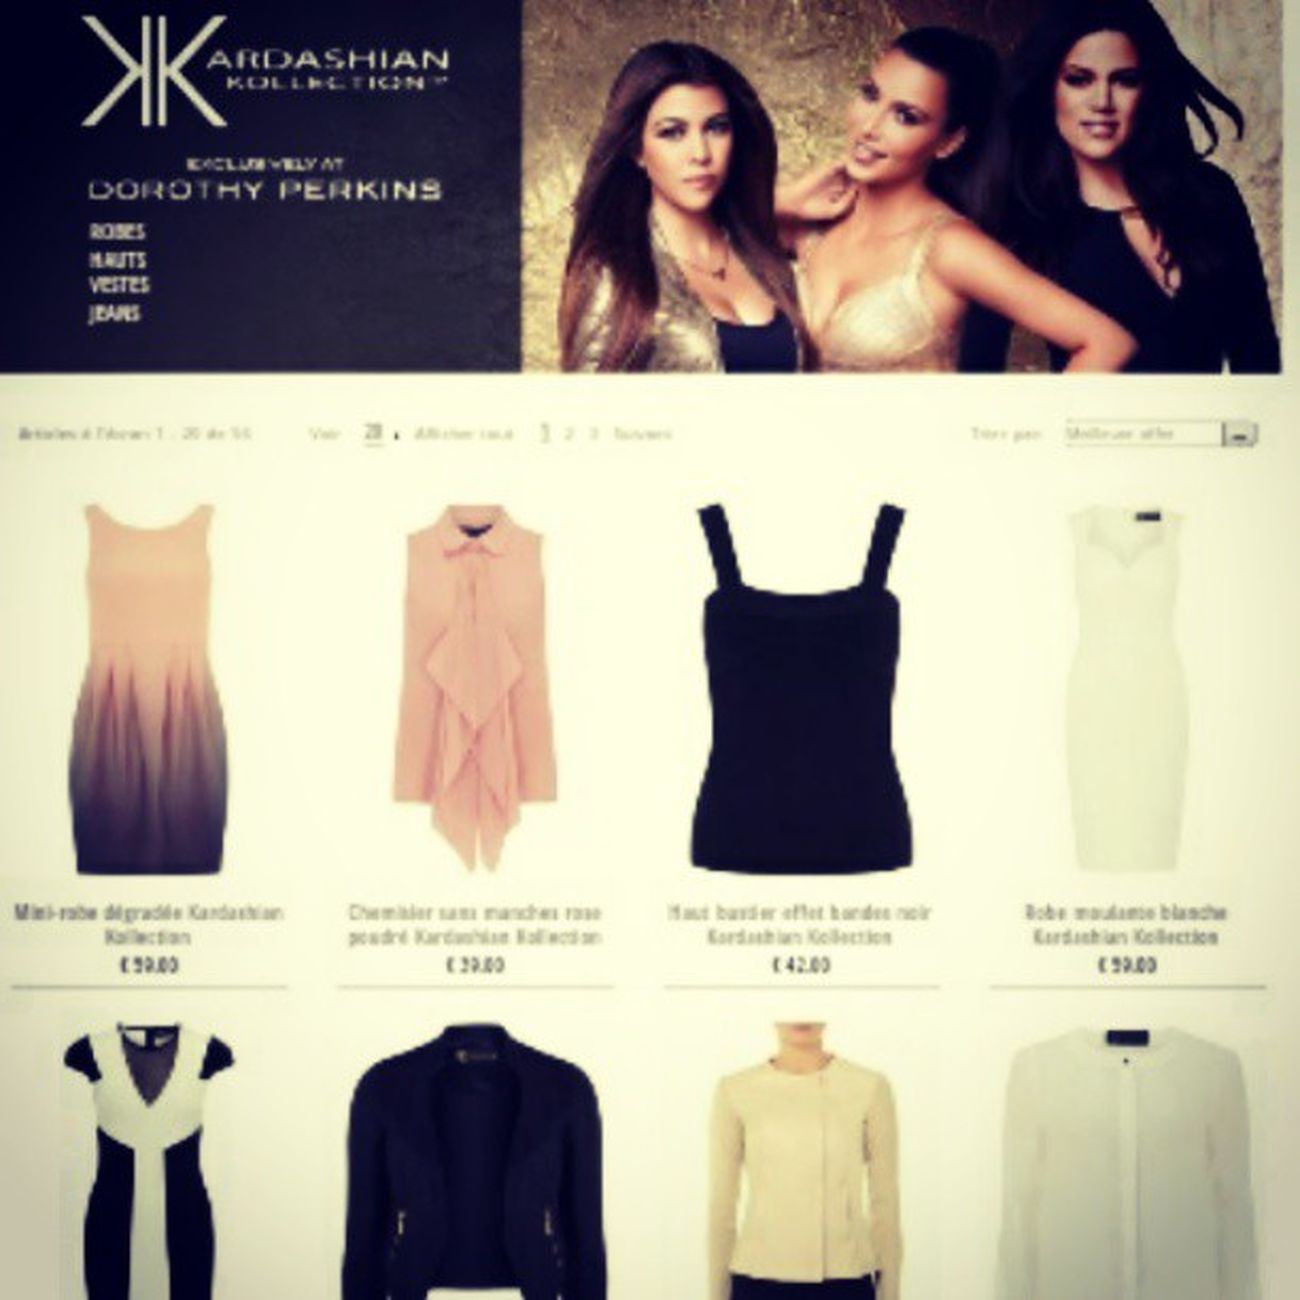 Prochainement je risque de go à Kardashian Kardashiankollection Dorothyperkins Good Dress Job